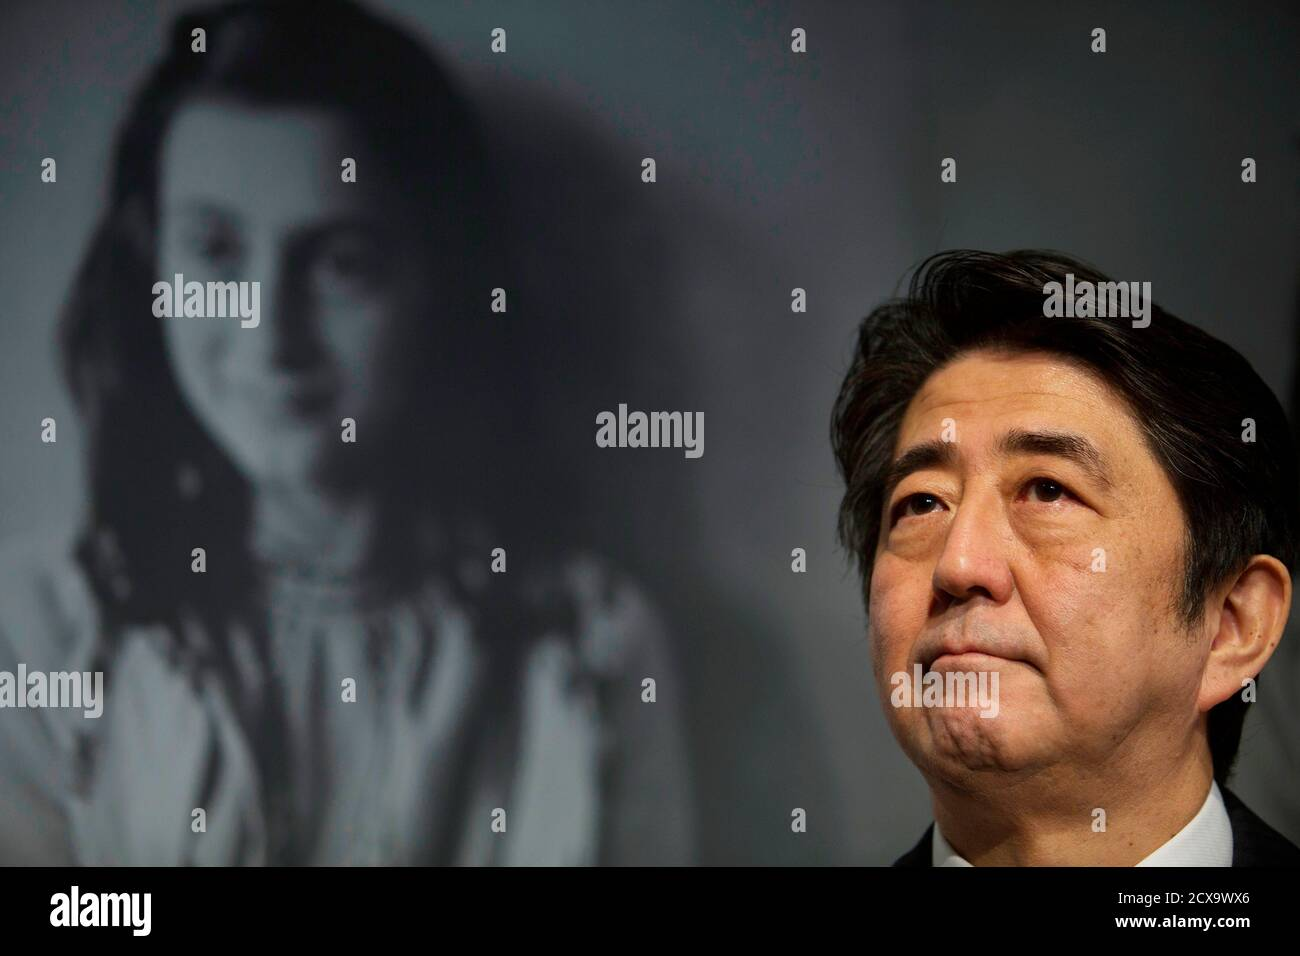 Japan's Prime Minister Shinzo Abe visits the Anne Frank House museum in Amsterdam March 23, 2014.  Abe visited the Anne Frank House museum on Sunday to highlight Japan's friendship with the Jewish people and sees no contradiction with his recent controversial visit to the Yasukuni Shrine at home. REUTERS/Cris Toala Olivares (NETHERLANDS - Tags: POLITICS) Stock Photo